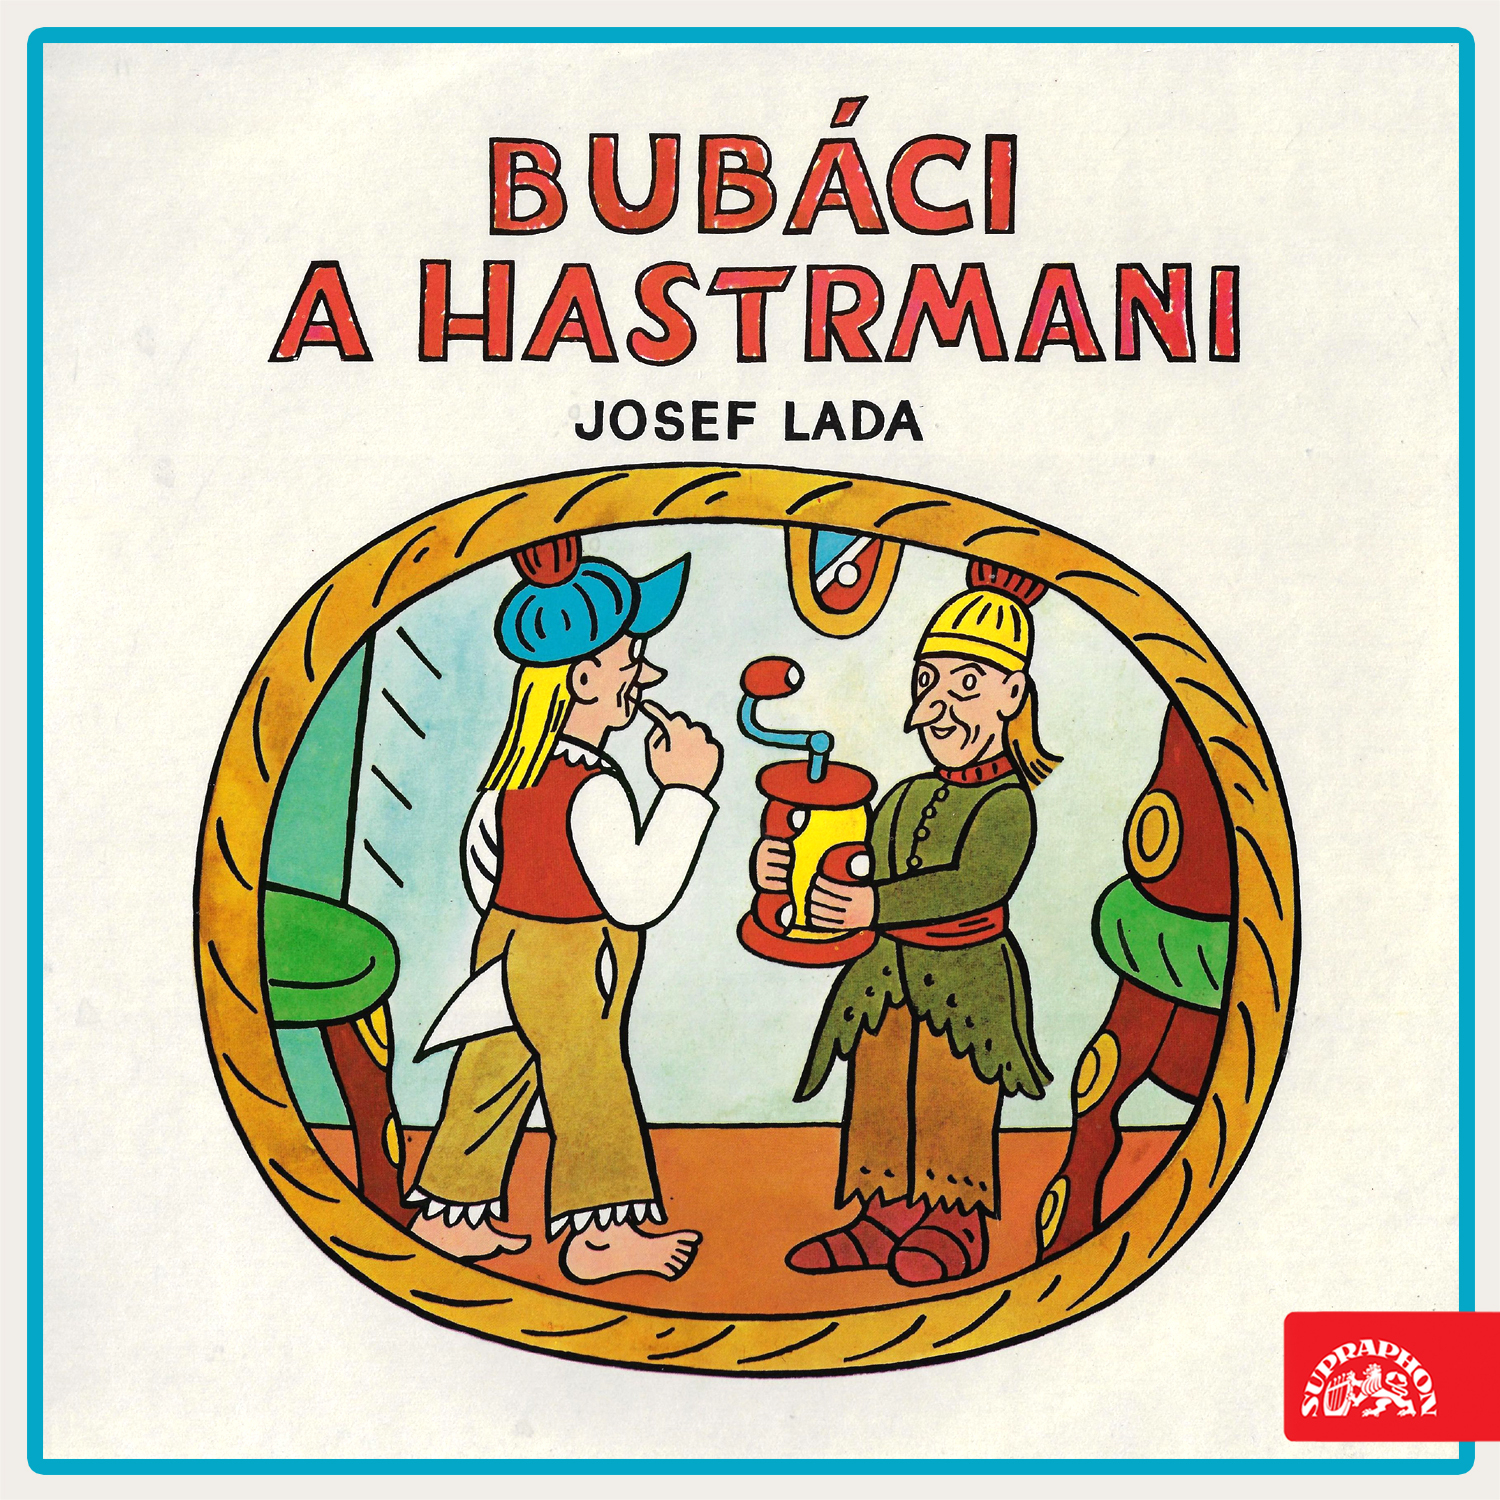 Bubáci a hastrmani